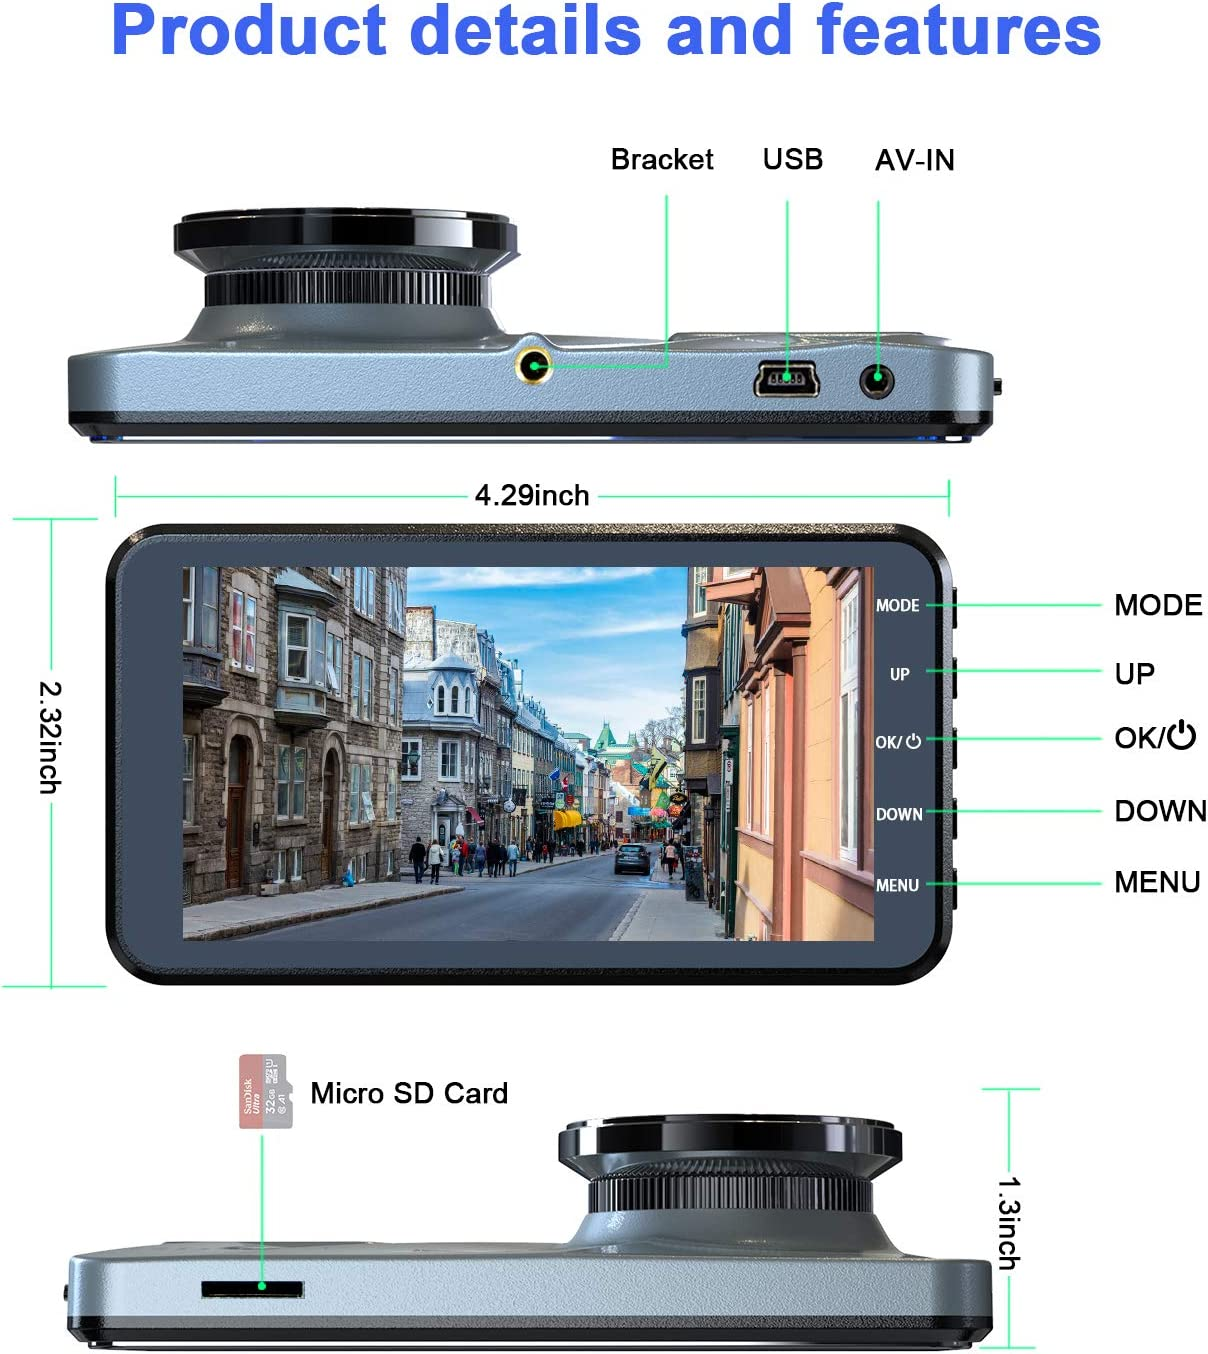 2020 Upgraded Version Full HD 1080P 4 Inch IPS Screen Car Camera for Cars Cycle Recording and Parking Monitoring Equipped with 170/°Wide Angle Contain 32GB SD Card G-Sensor Dual Dash Cam